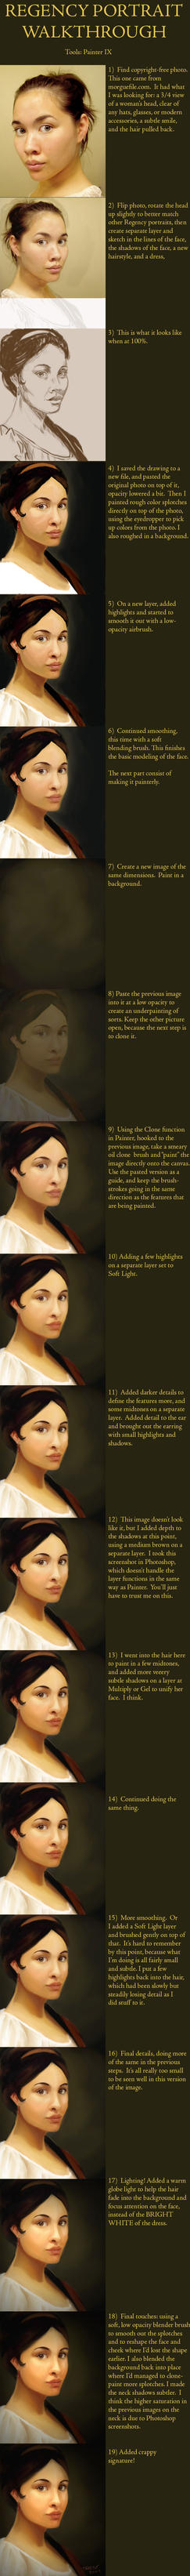 Regency Portrait Walkthrough by telophase